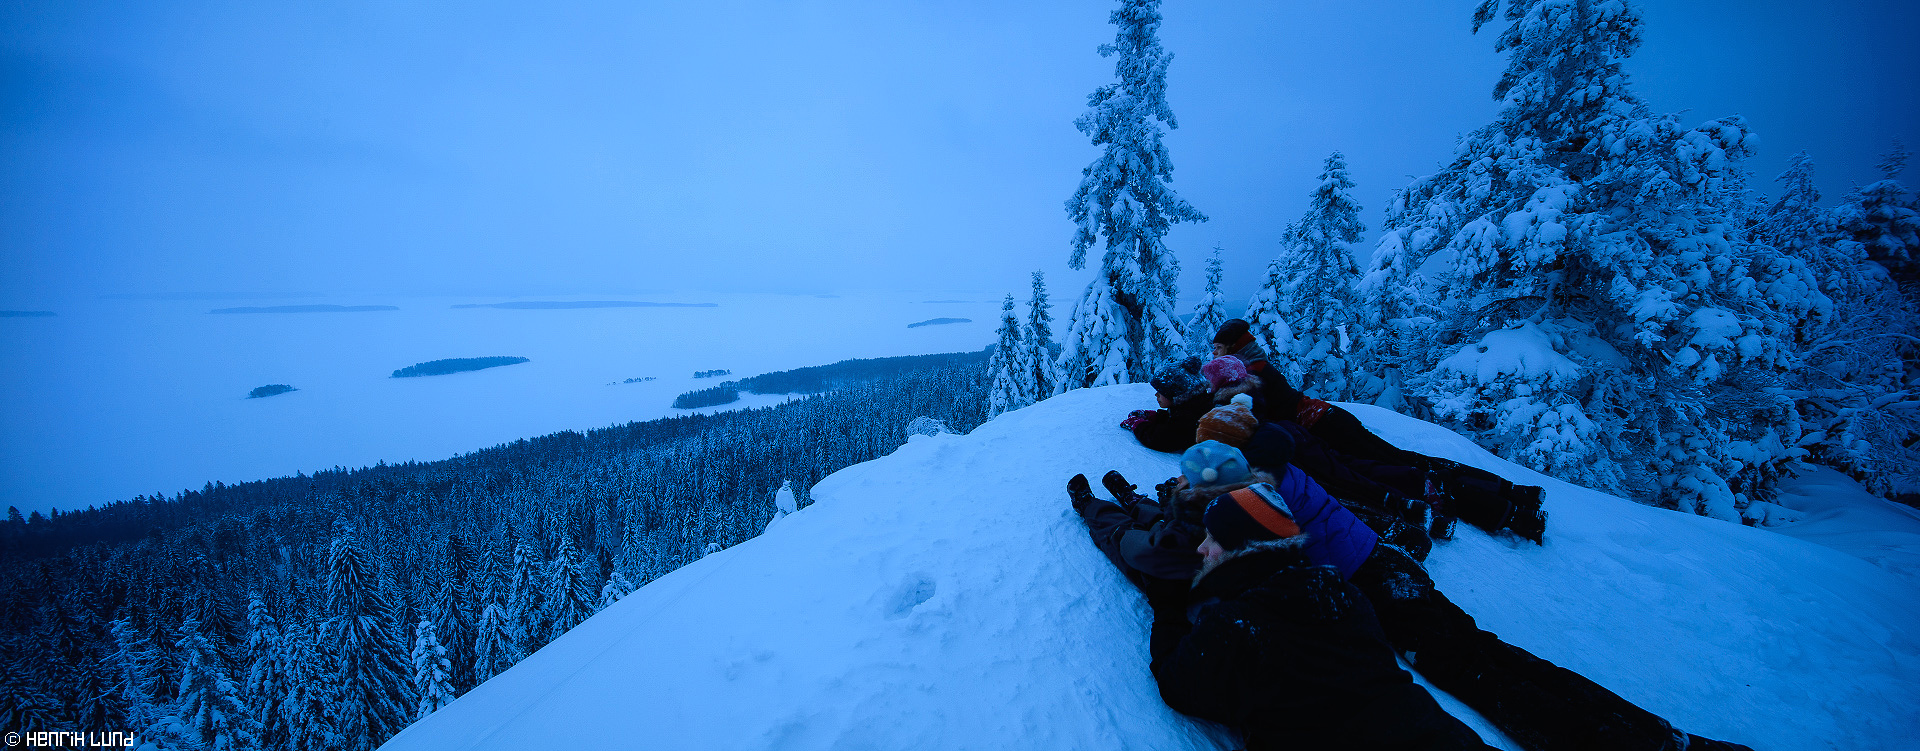 Panoramic view over Pielinen from Koli - children watching over the panoramic scene at blue hour, Lieksa, Finland. February 2016.